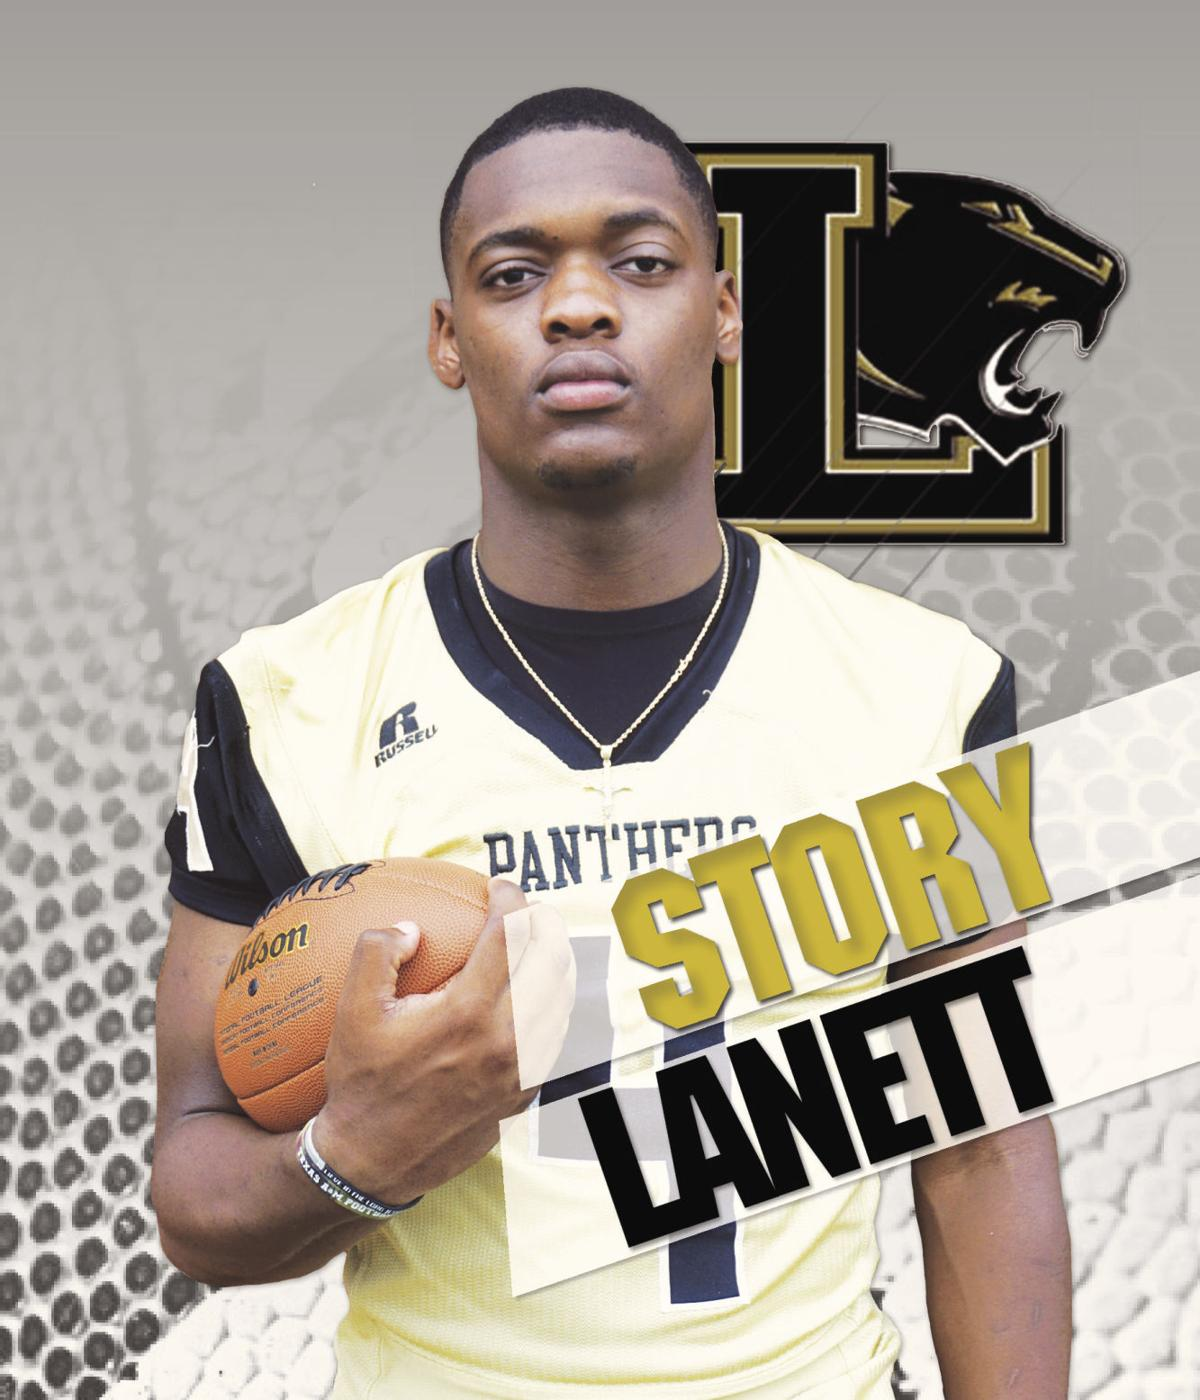 Lanett Panthers football